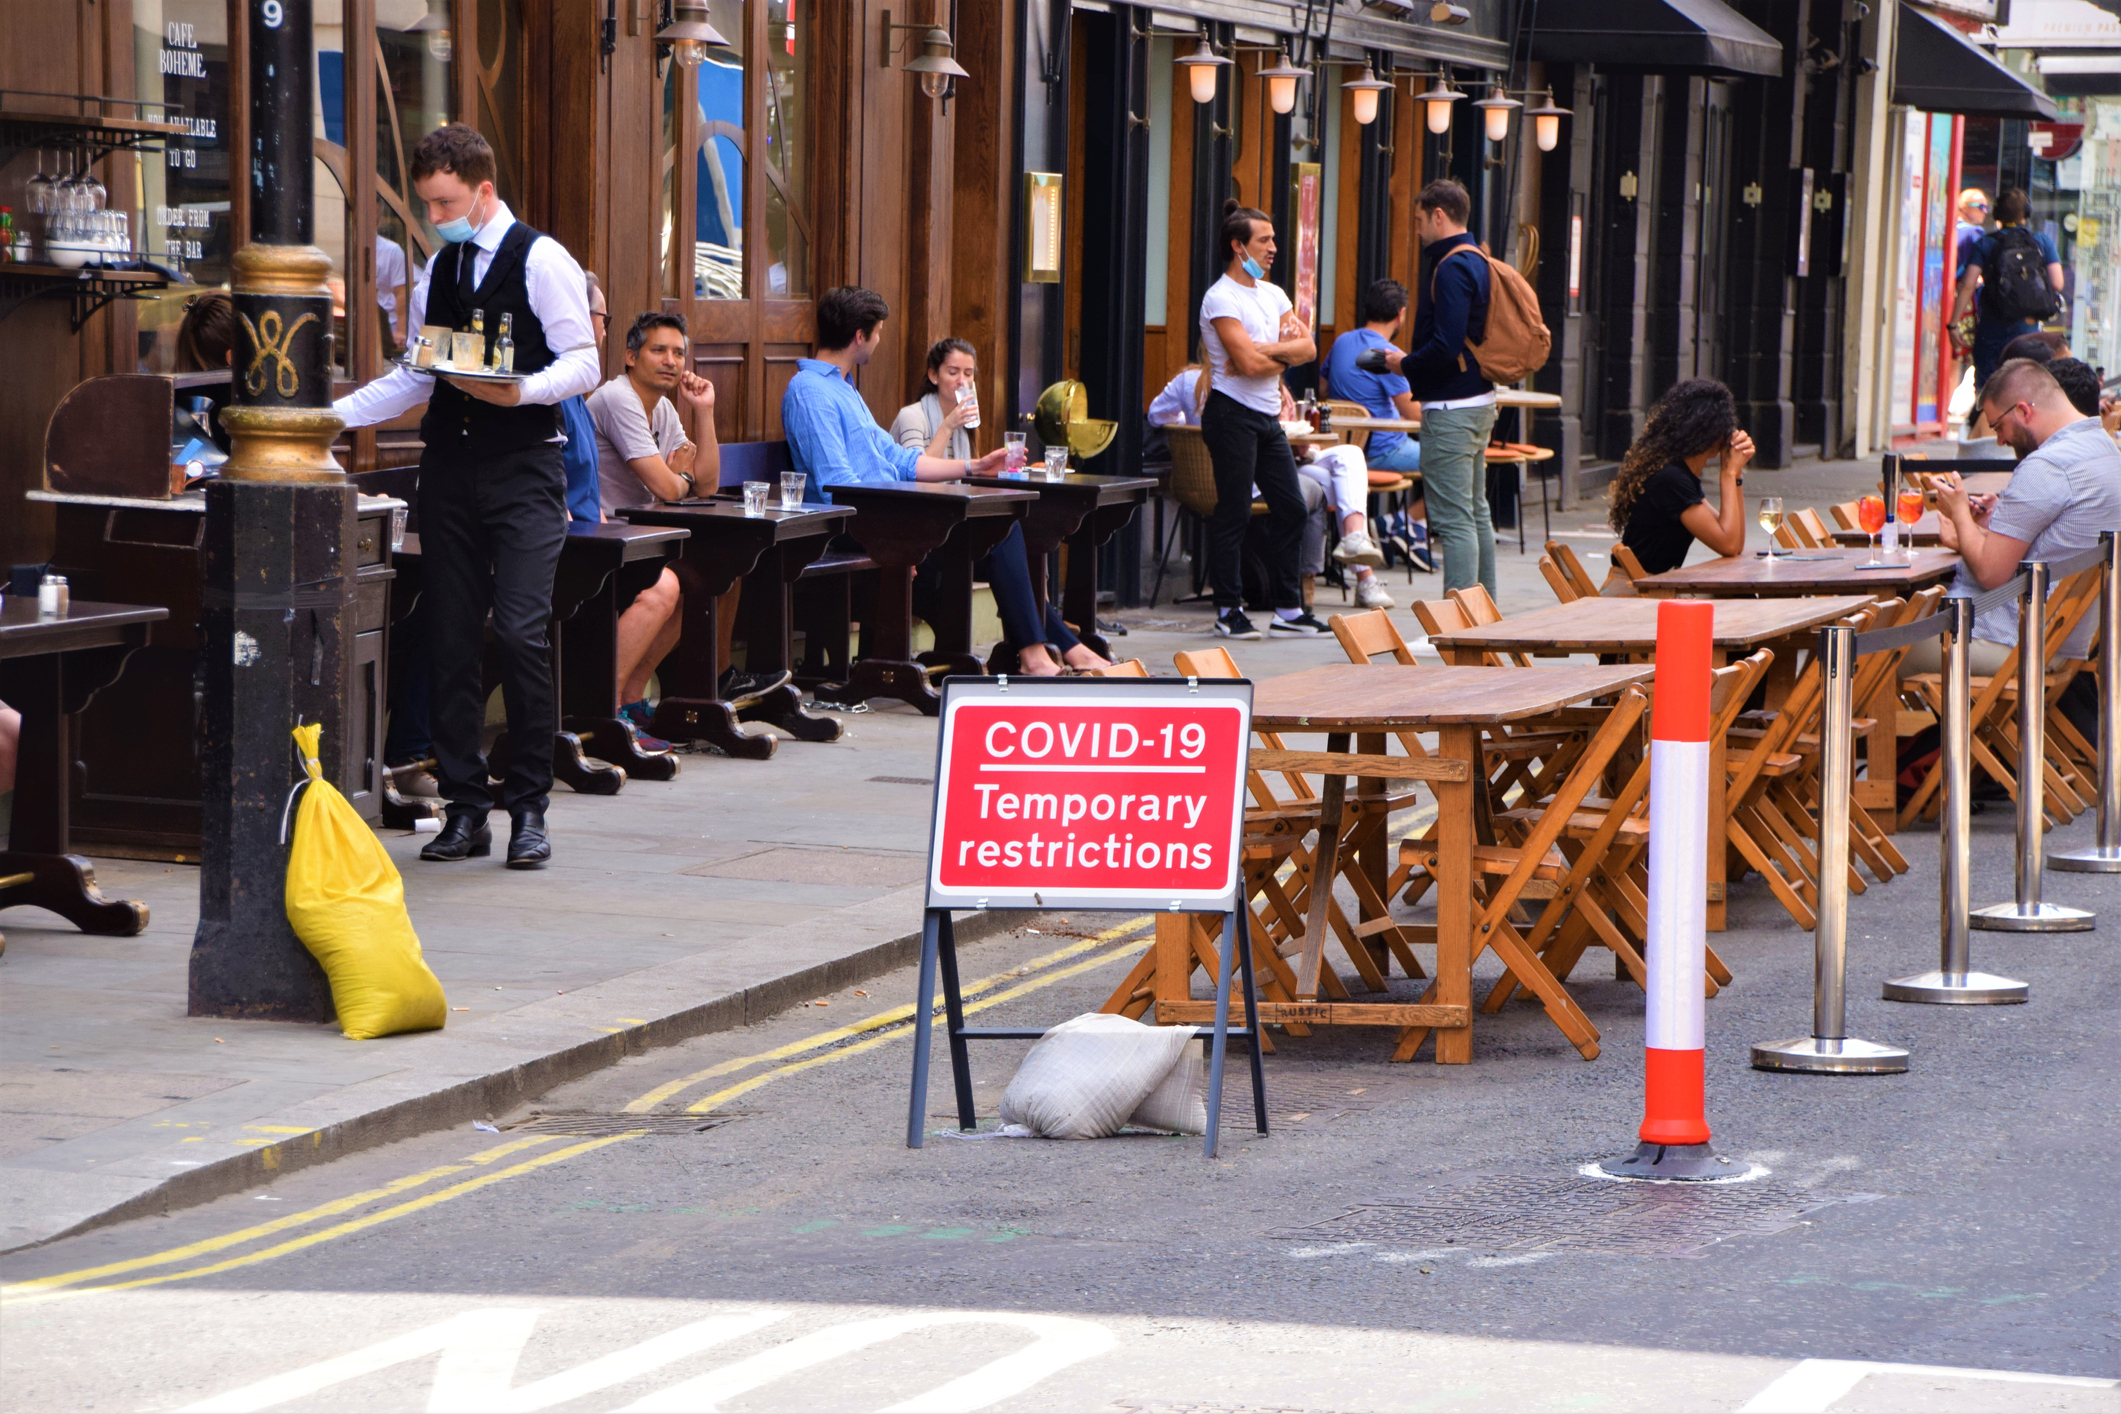 Social distancing outdoor seating with Covid-19 signs, Old Compton Street, Soho, London